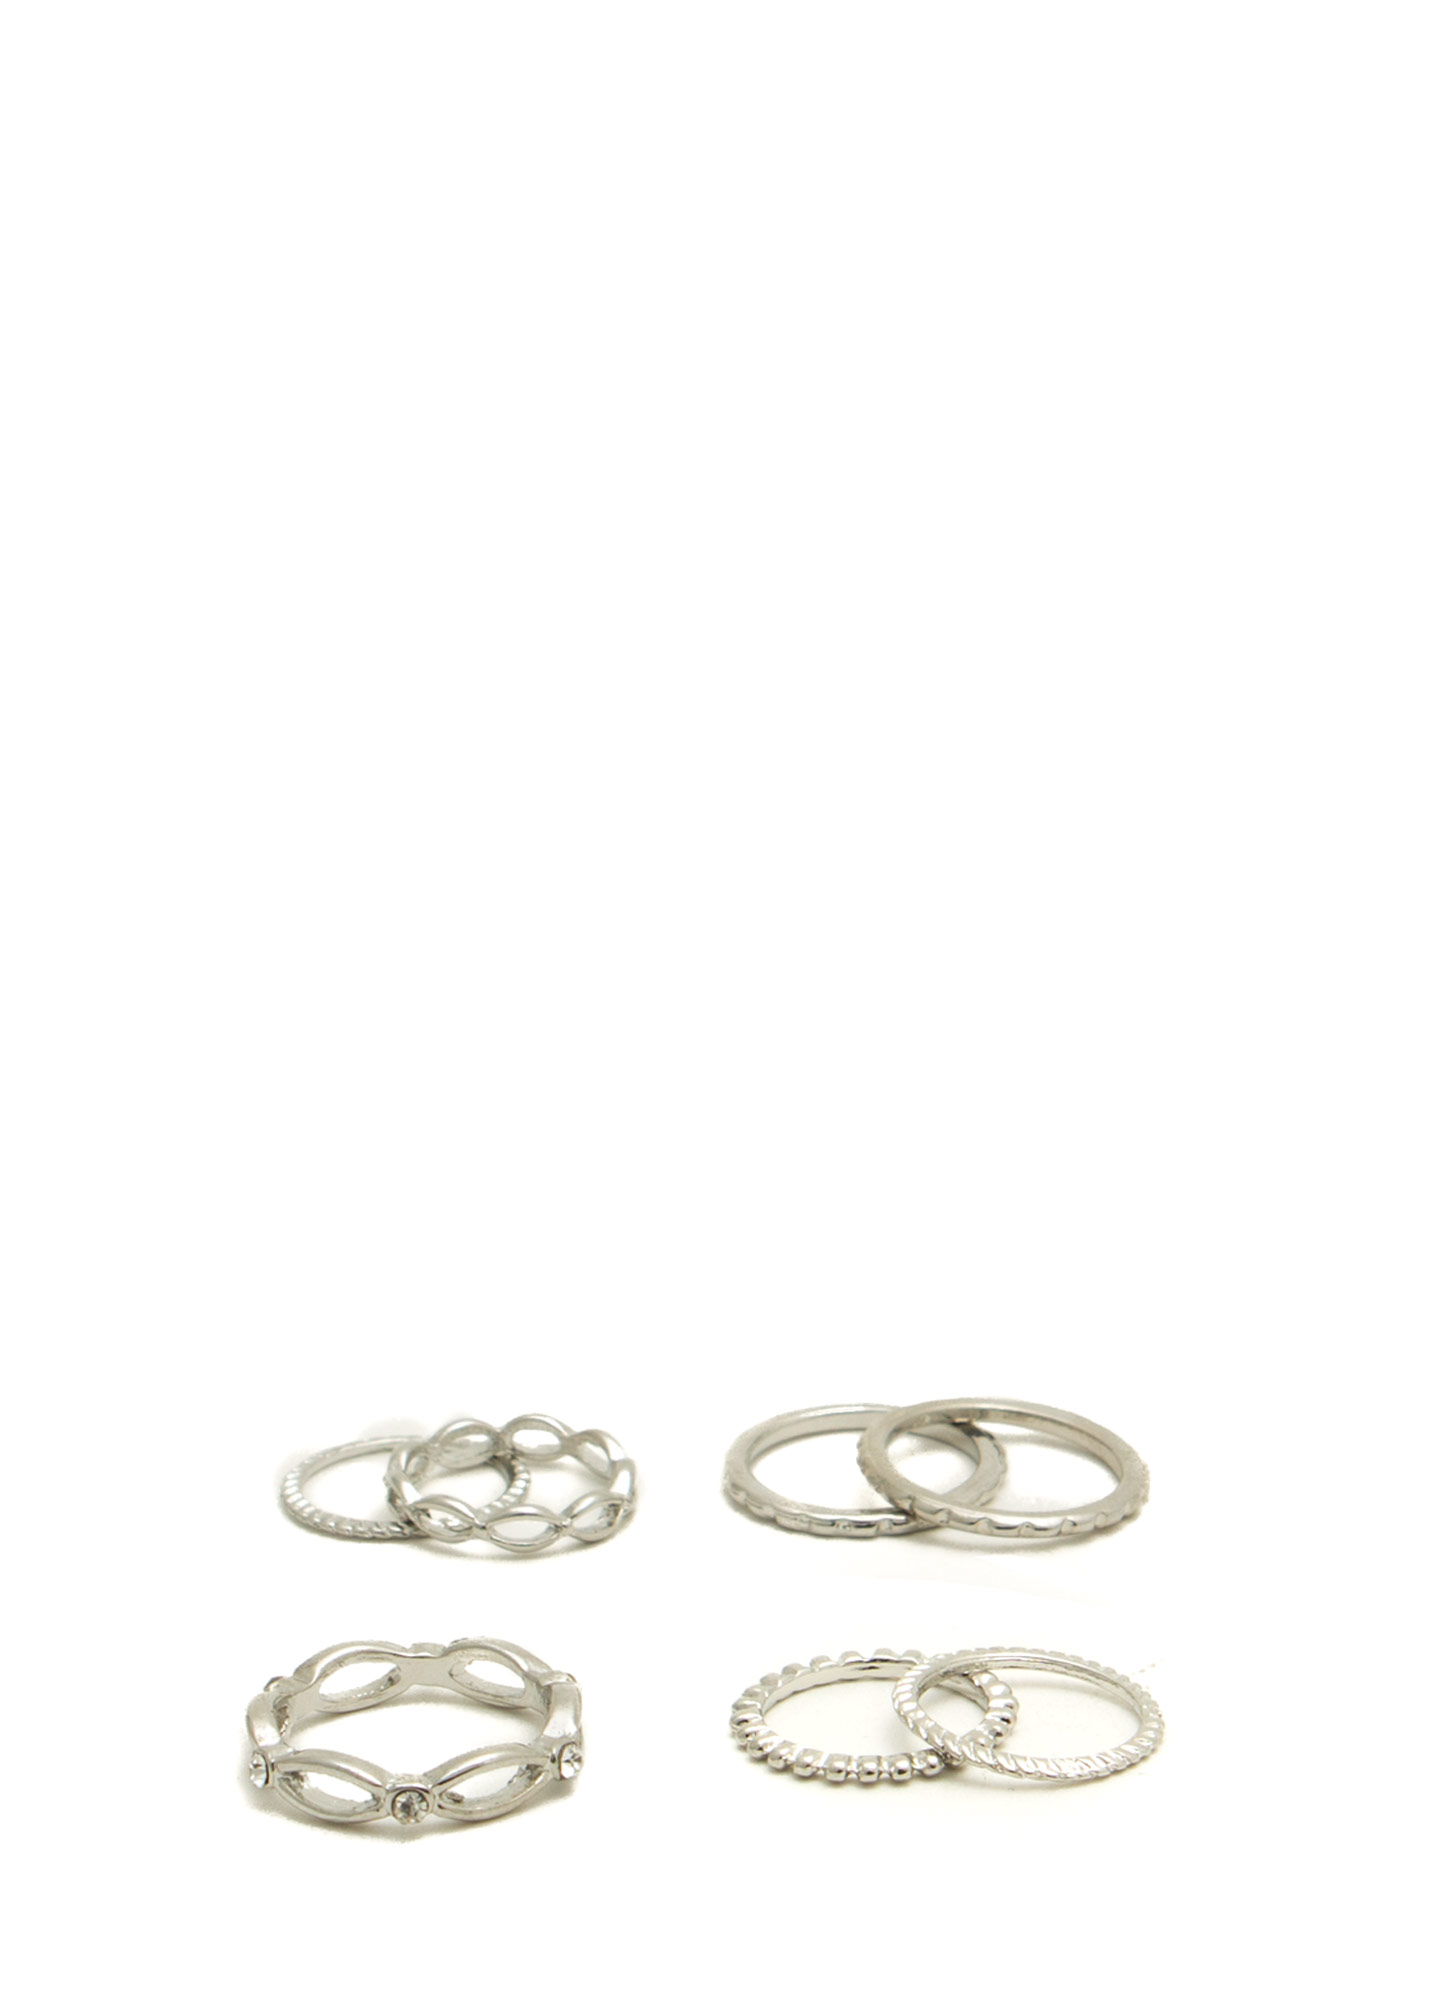 Dainty 'N Textured Metallic Ring Set SILVER